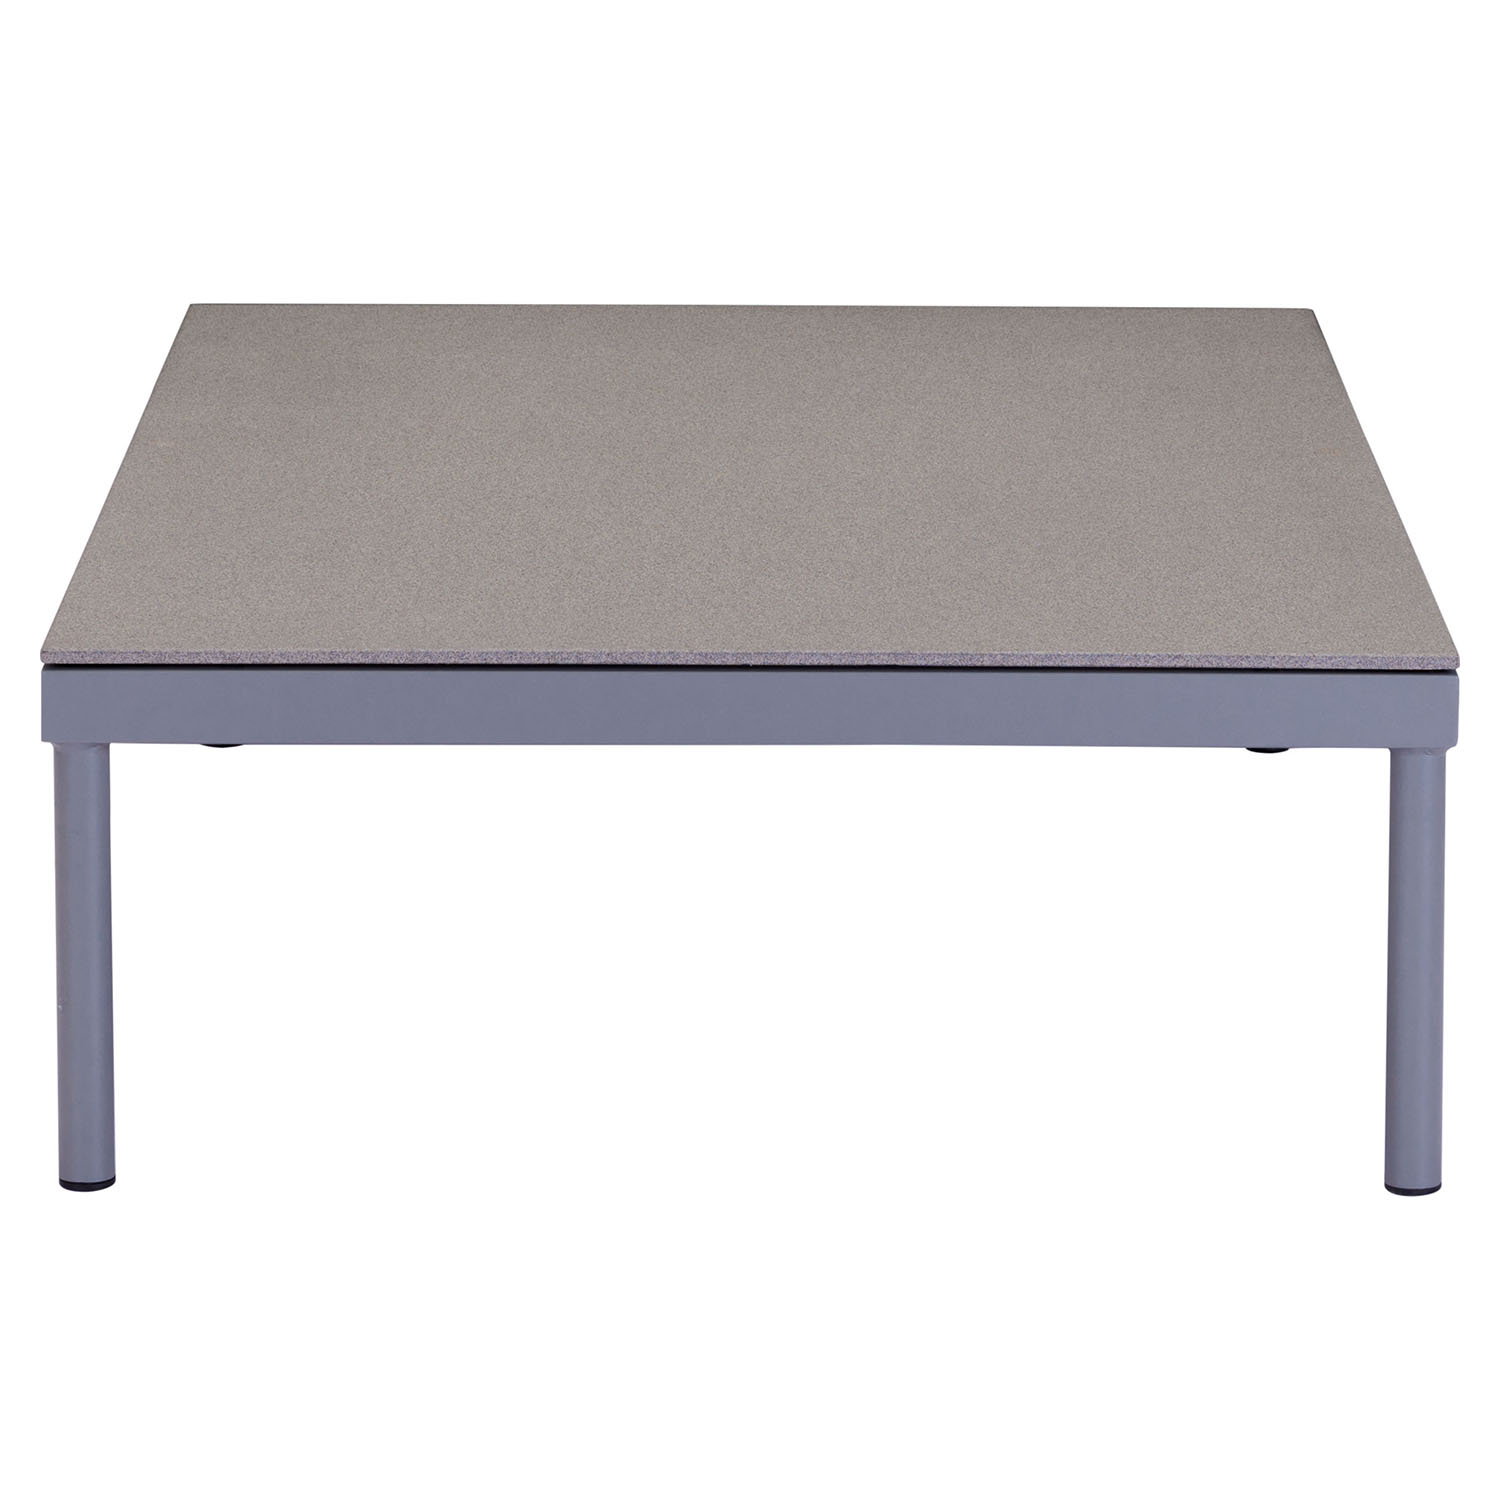 Sand Beach Coffee Table - Gray and Granite - ZM-703578